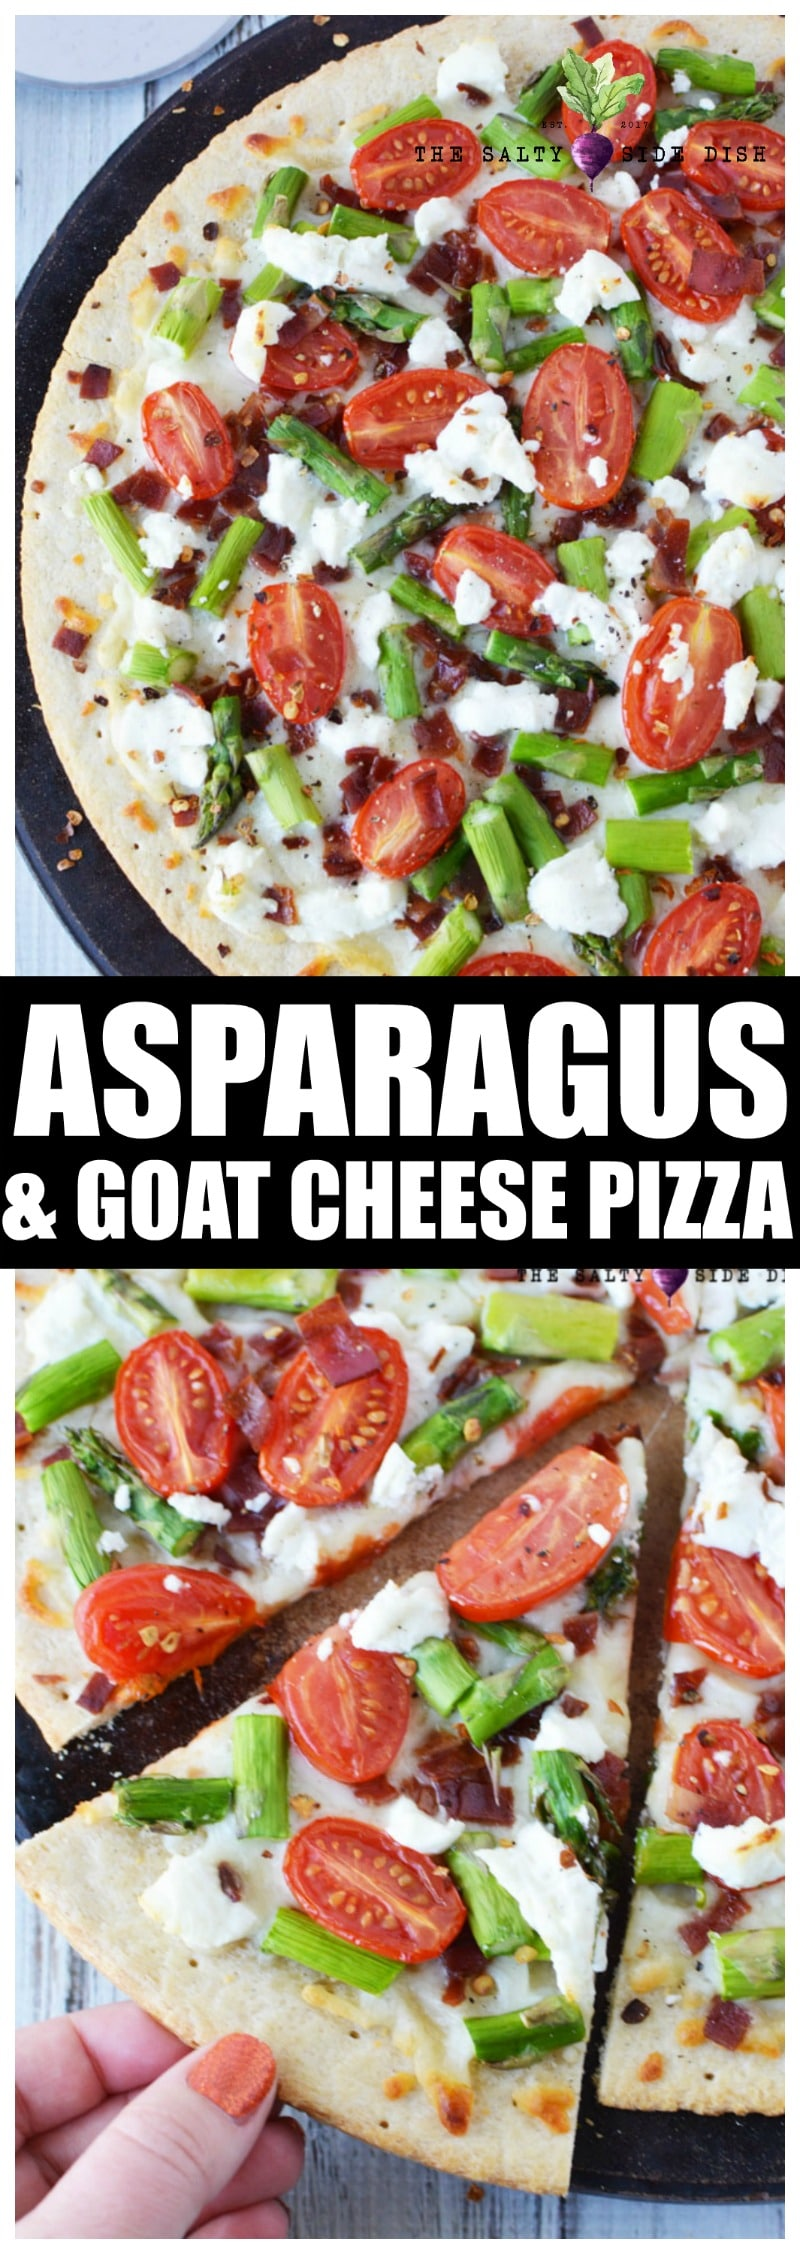 Asparagus Pizza with Creamy Goat Cheese and Crispy bacon make up the perfect homemade pizza #bacon #goatcheese #dinner #recipes #menu #pizza #asparagus #saltysidedish #appetizer #italian